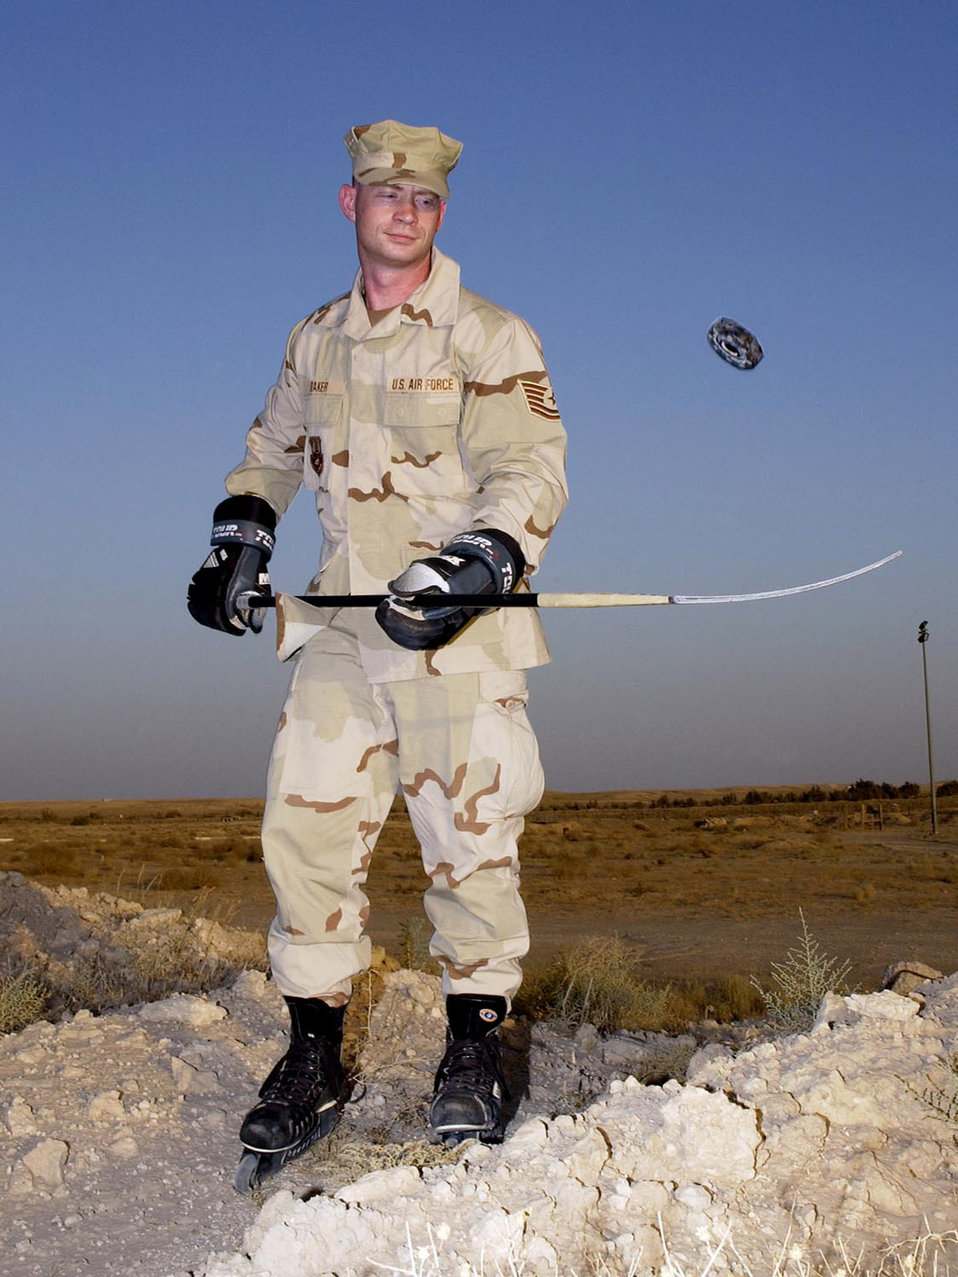 Airman finds peace in desert playing hockey